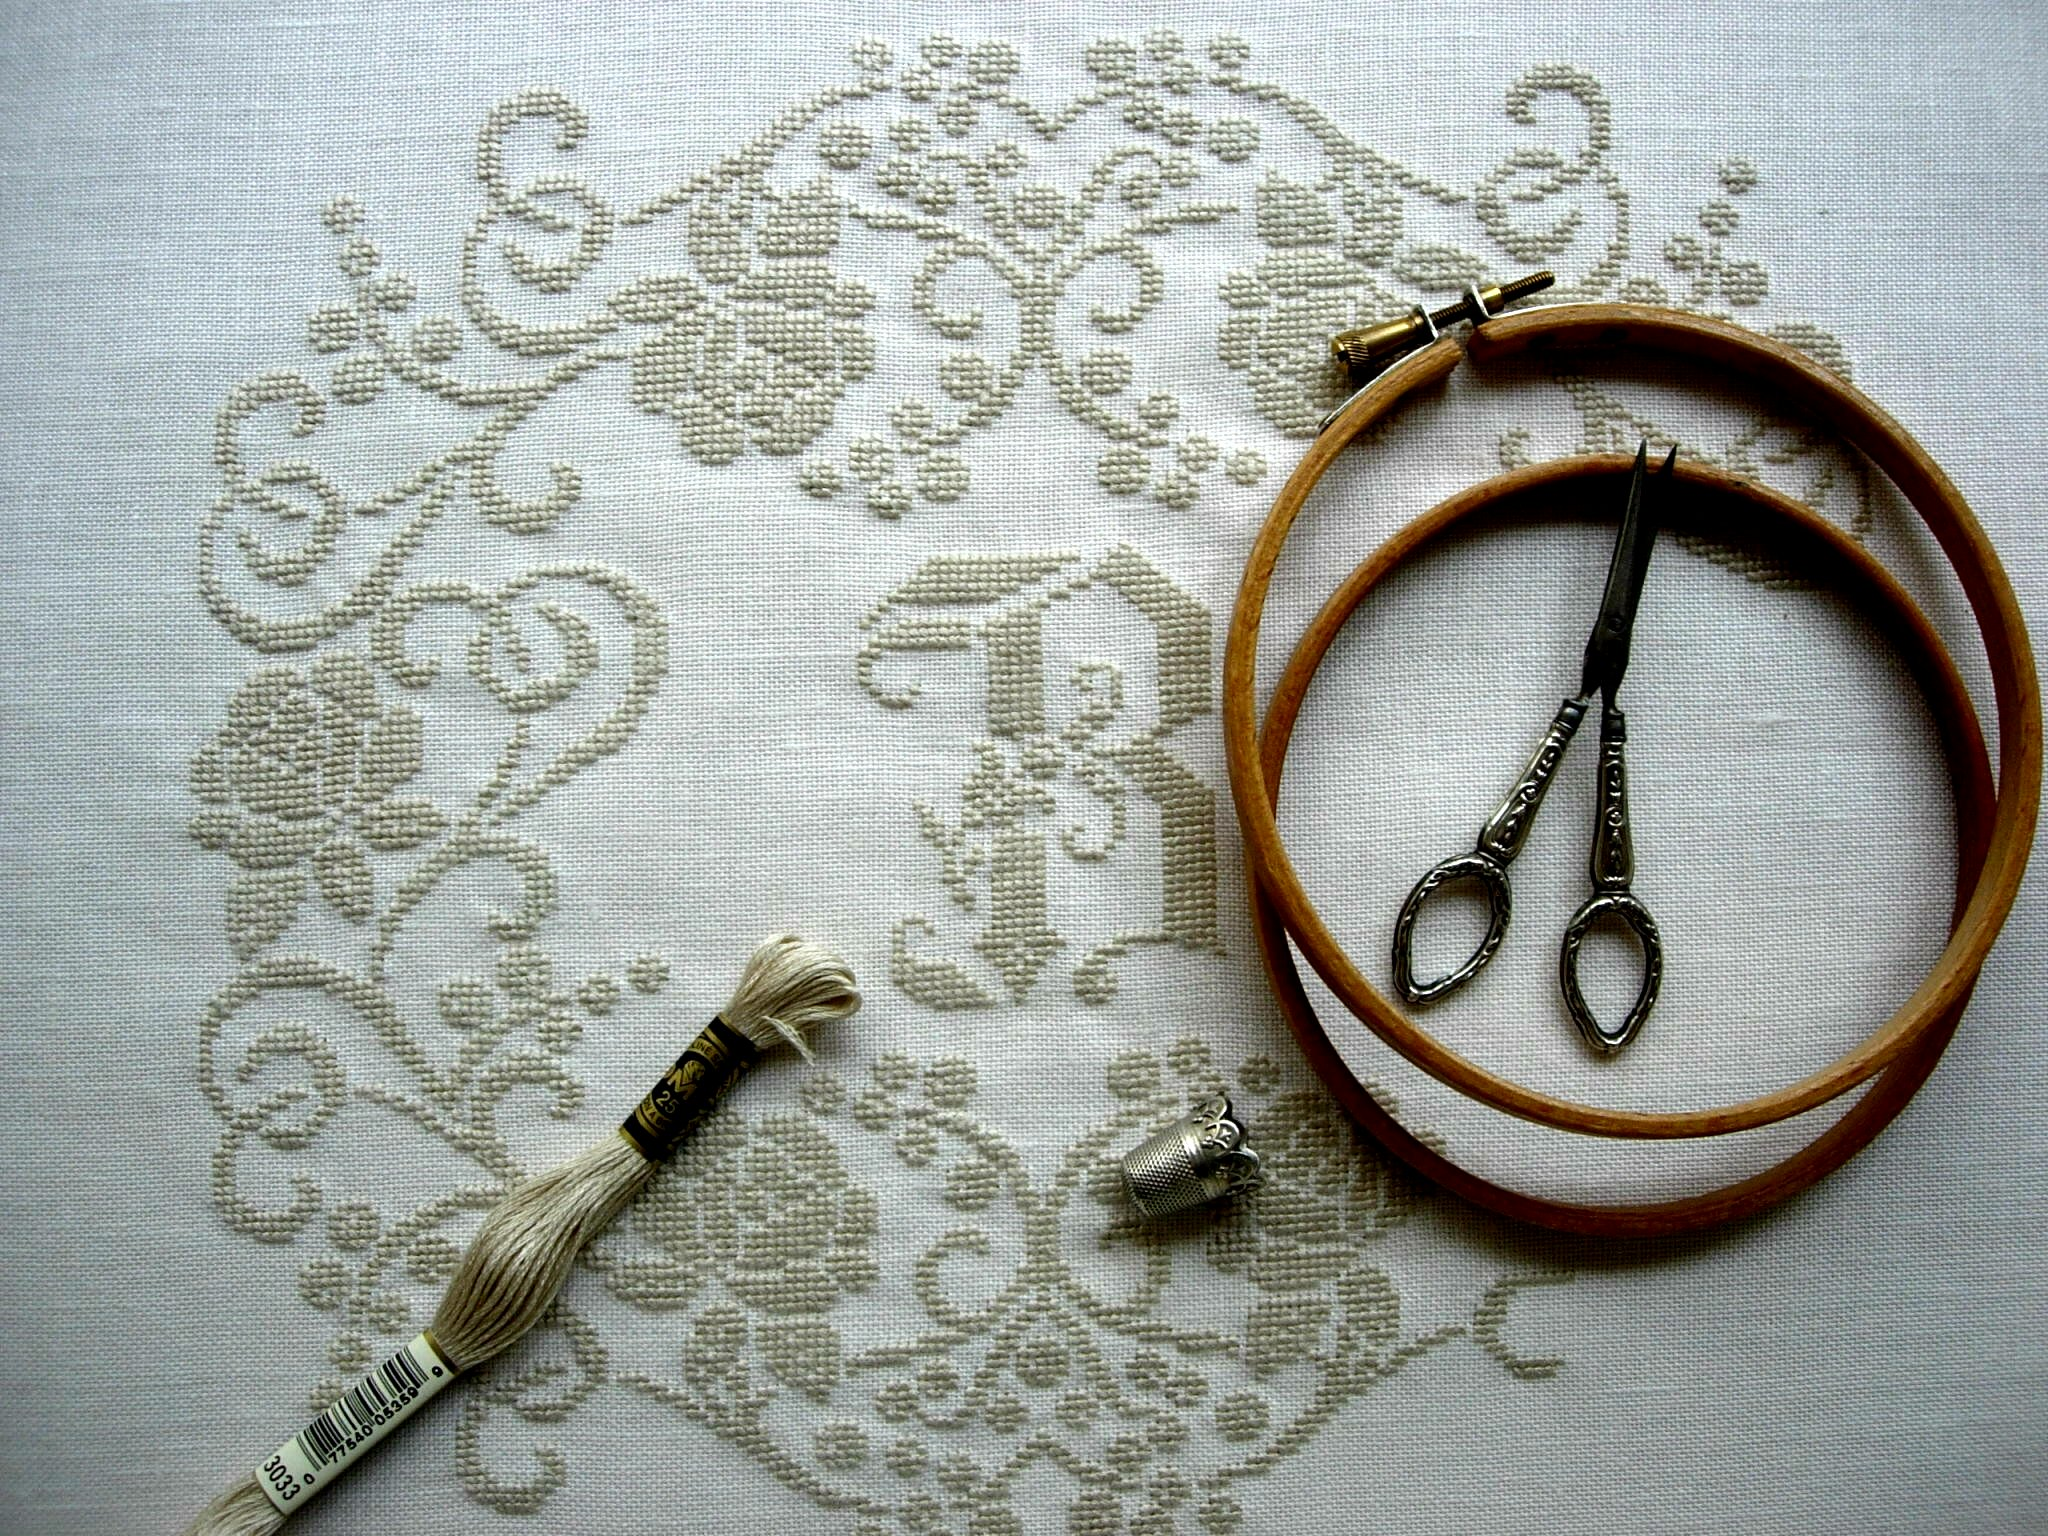 Bathilde - Cross stitch pattern by Lili Soleil